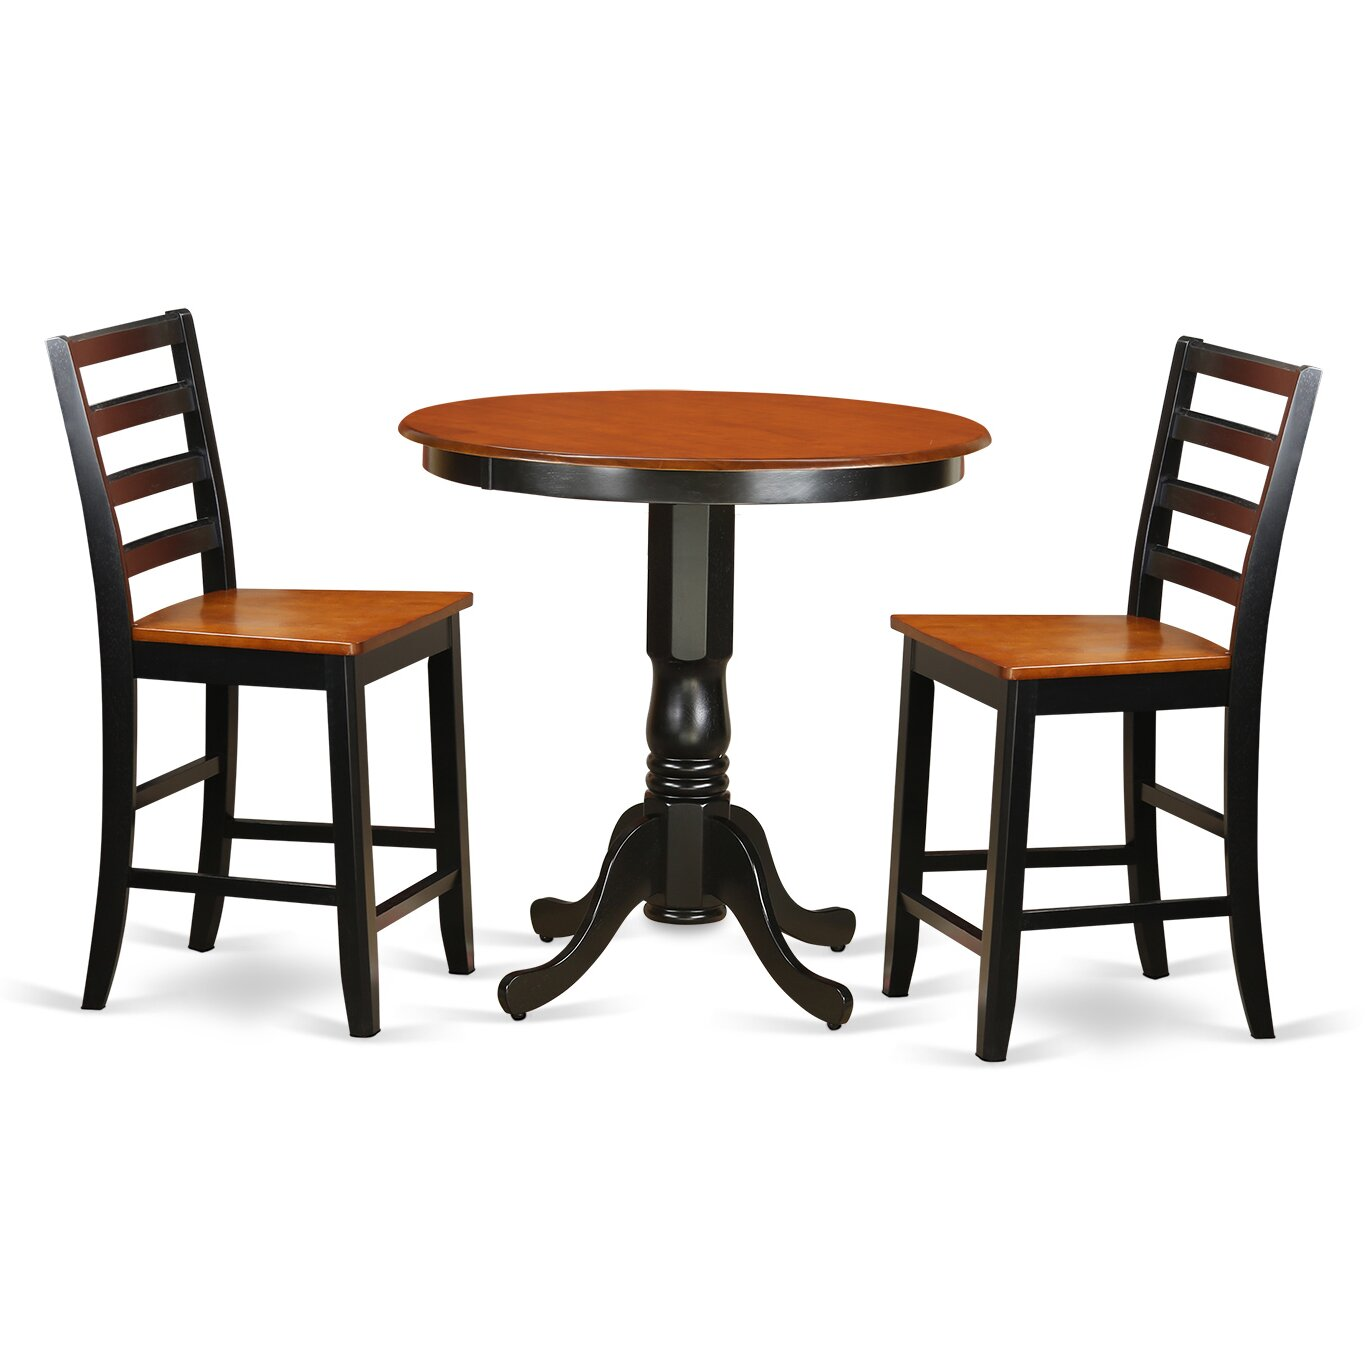 Wooden importers jackson 3 piece counter height pub table for Table and bench set